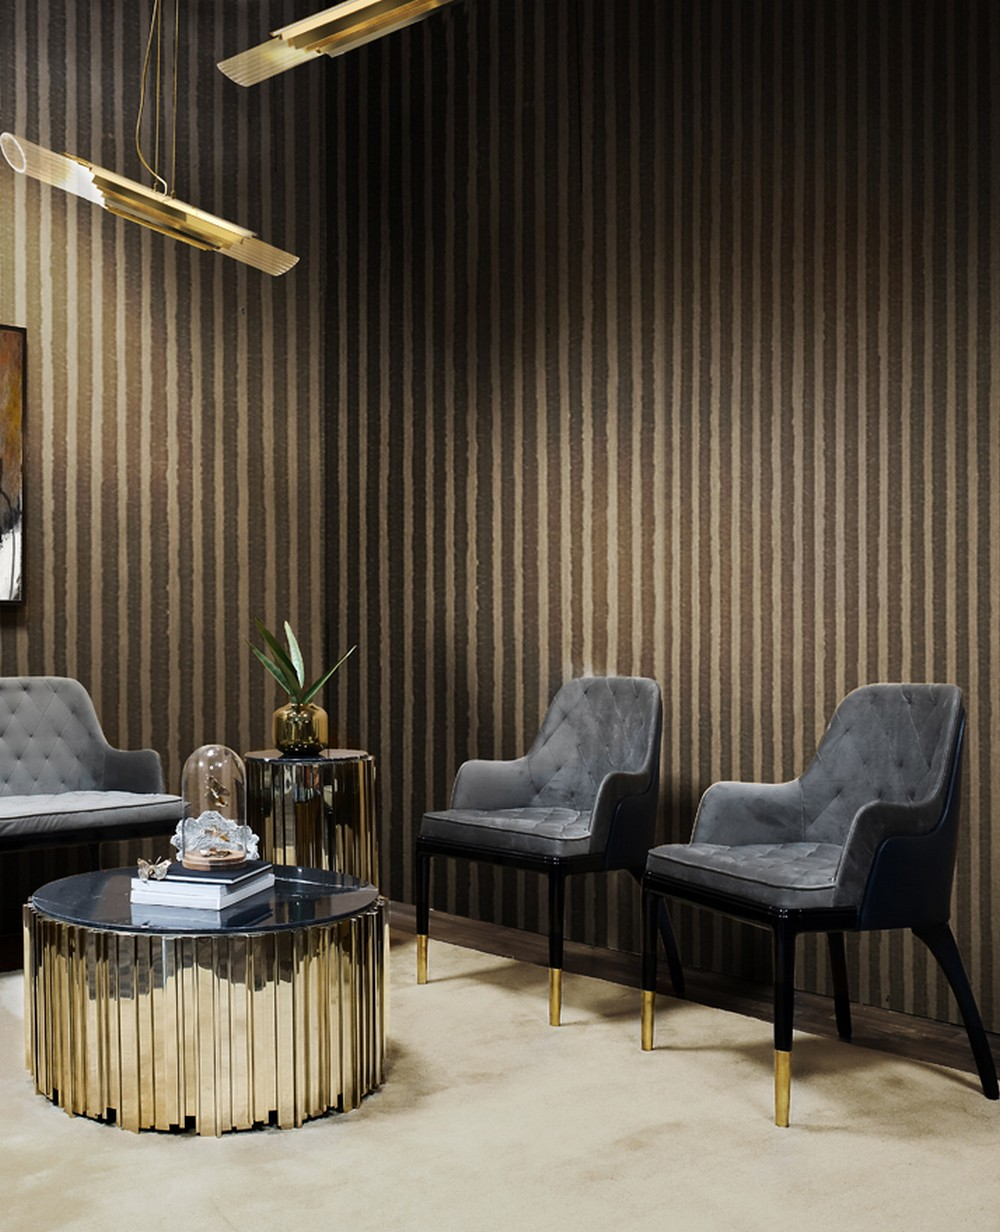 5 Handcrafted Furniture Designs By The Incredible Luxxu Home Brand handcrafted furniture designs 5 Handcrafted Furniture Designs By The Incredible Luxxu Home Brand Milan Design Week 2019 See The Novelties Of The Incredible Luxxu Home 4